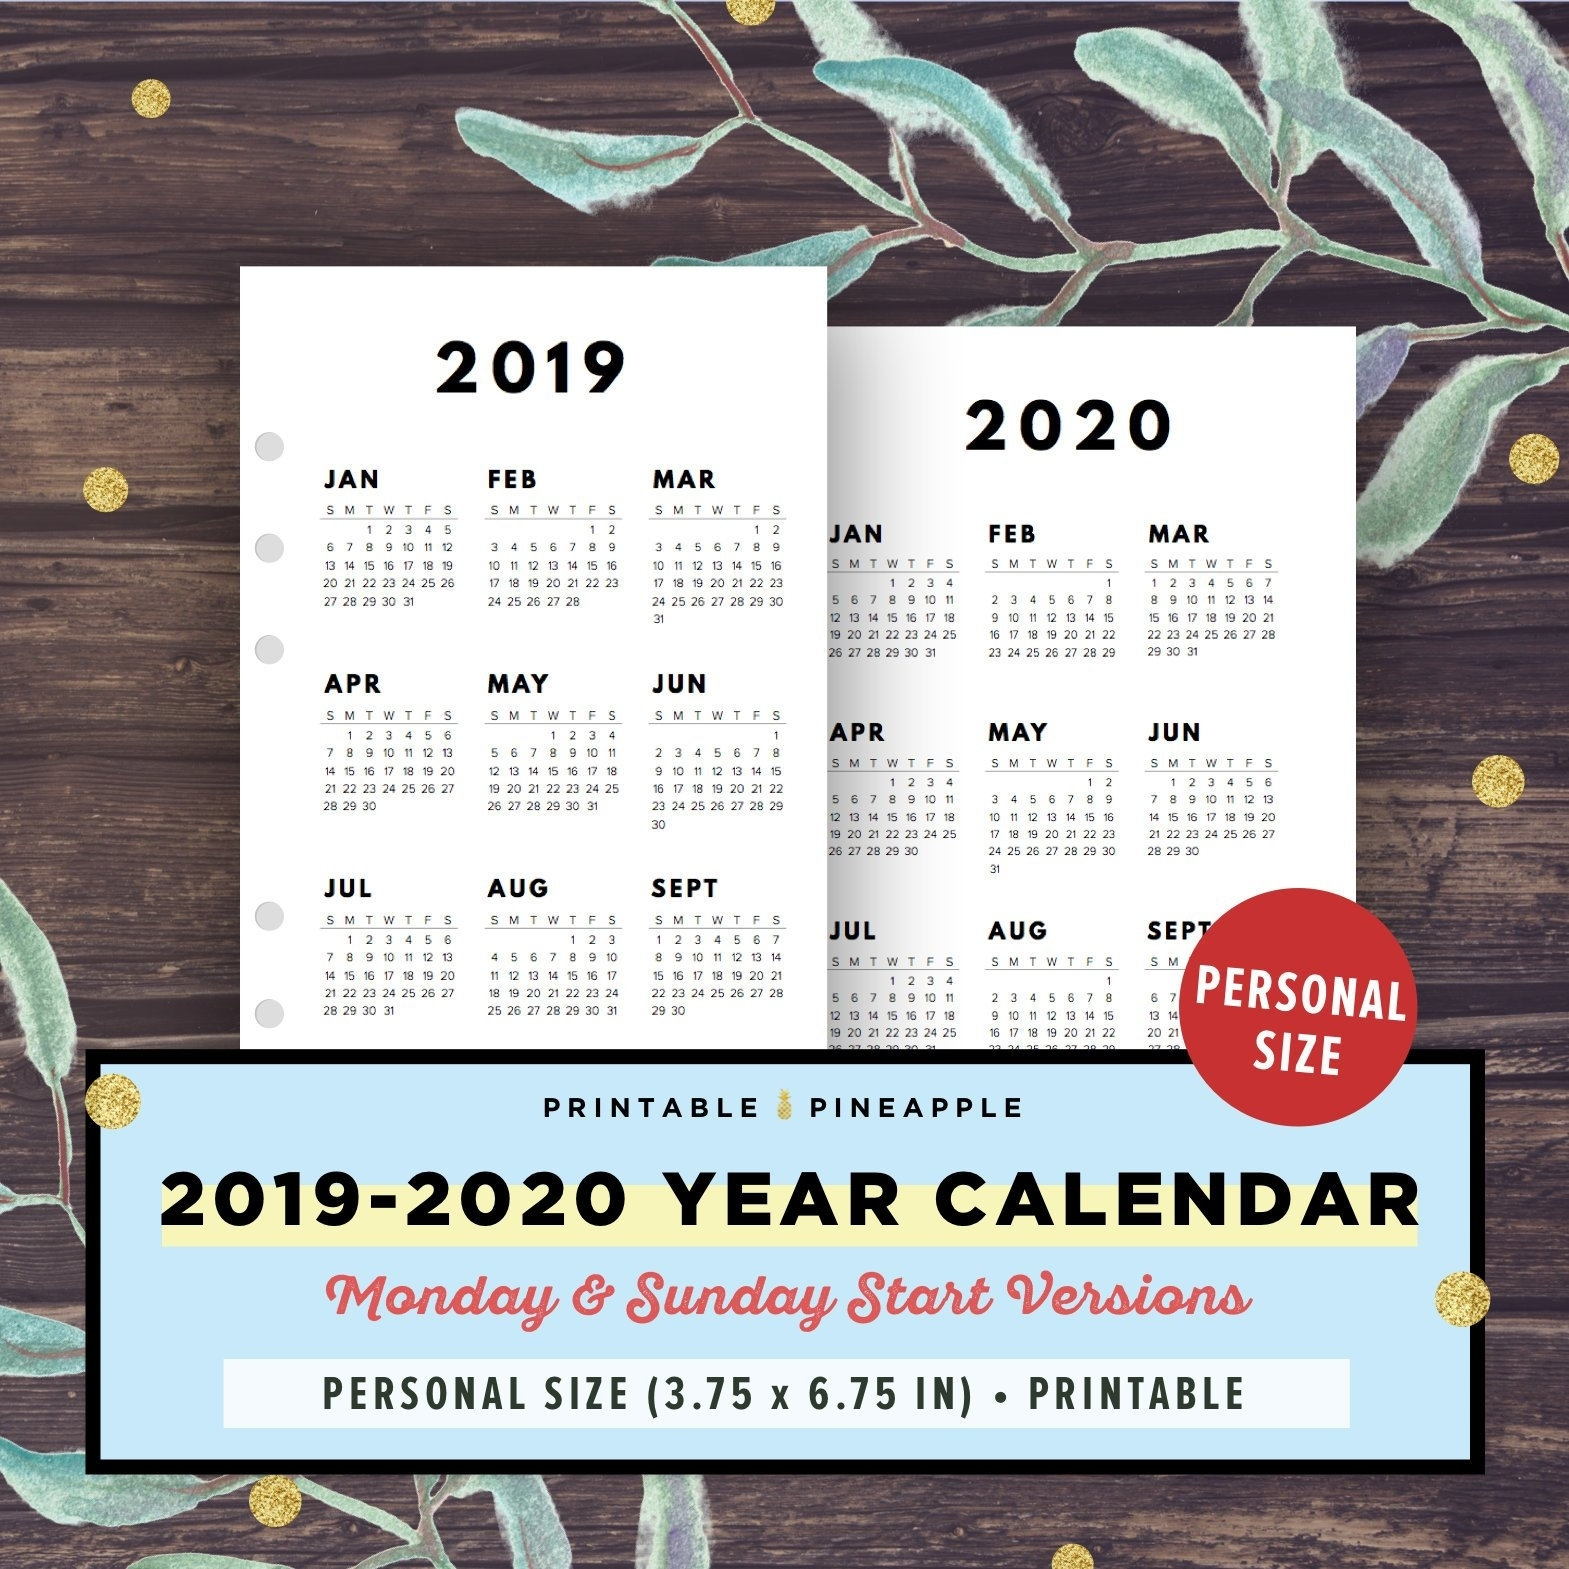 Year Planner 2019-2020 Personal Size Inserts Calendar | Etsy within 2020 Wall Calendar Kikki K